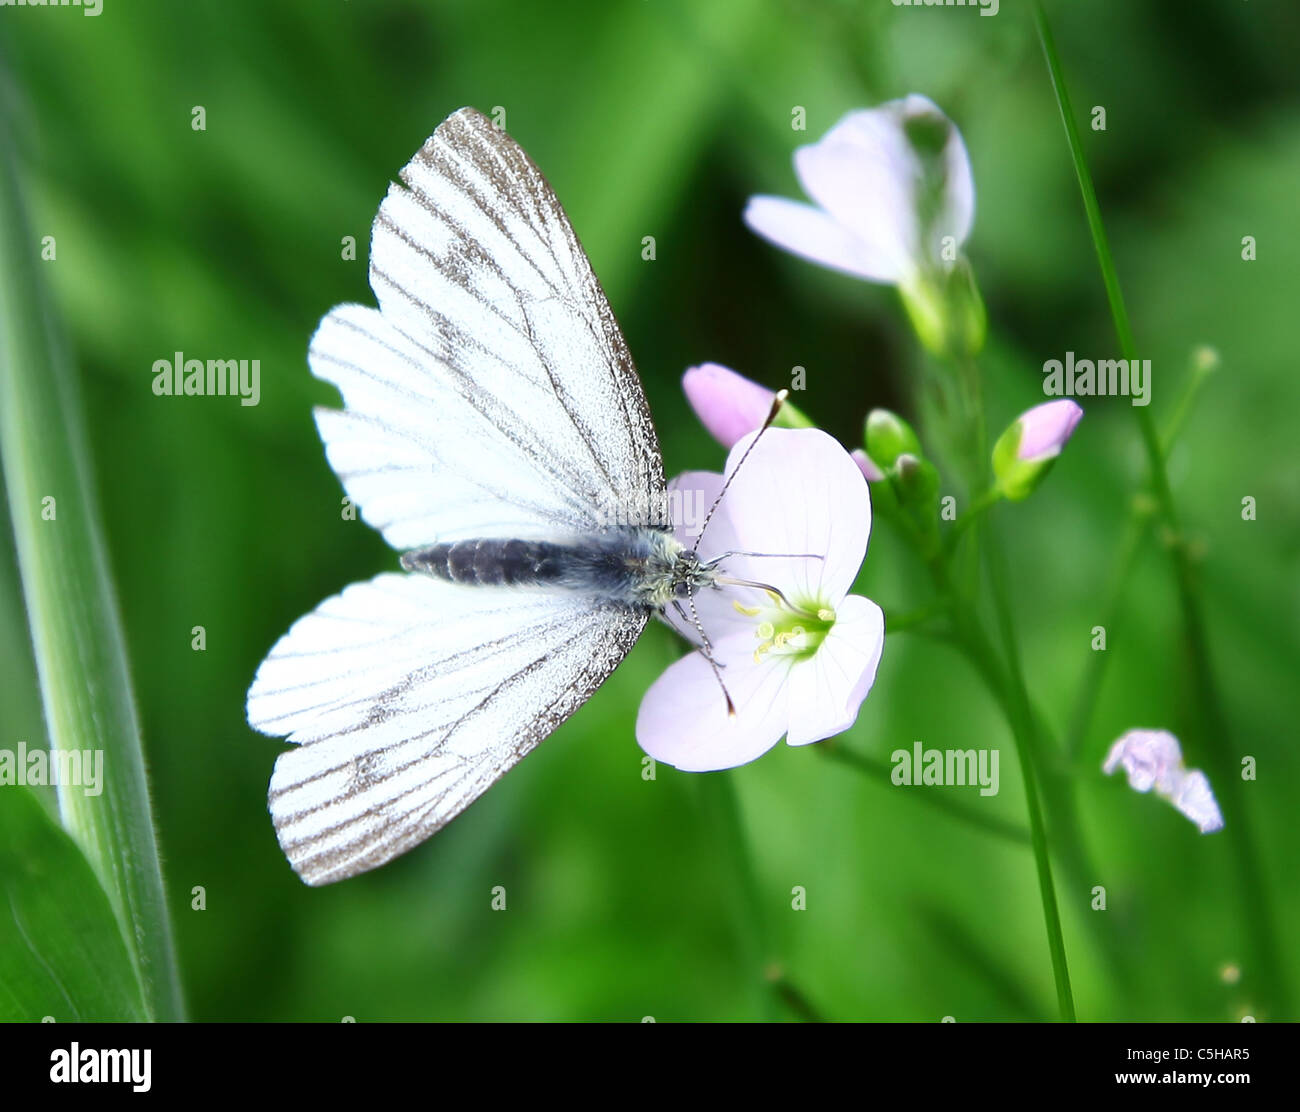 A Green-veined White (Pieris napi) butterfly on a Lady's Smock or Cuckoo flower - Stock Image